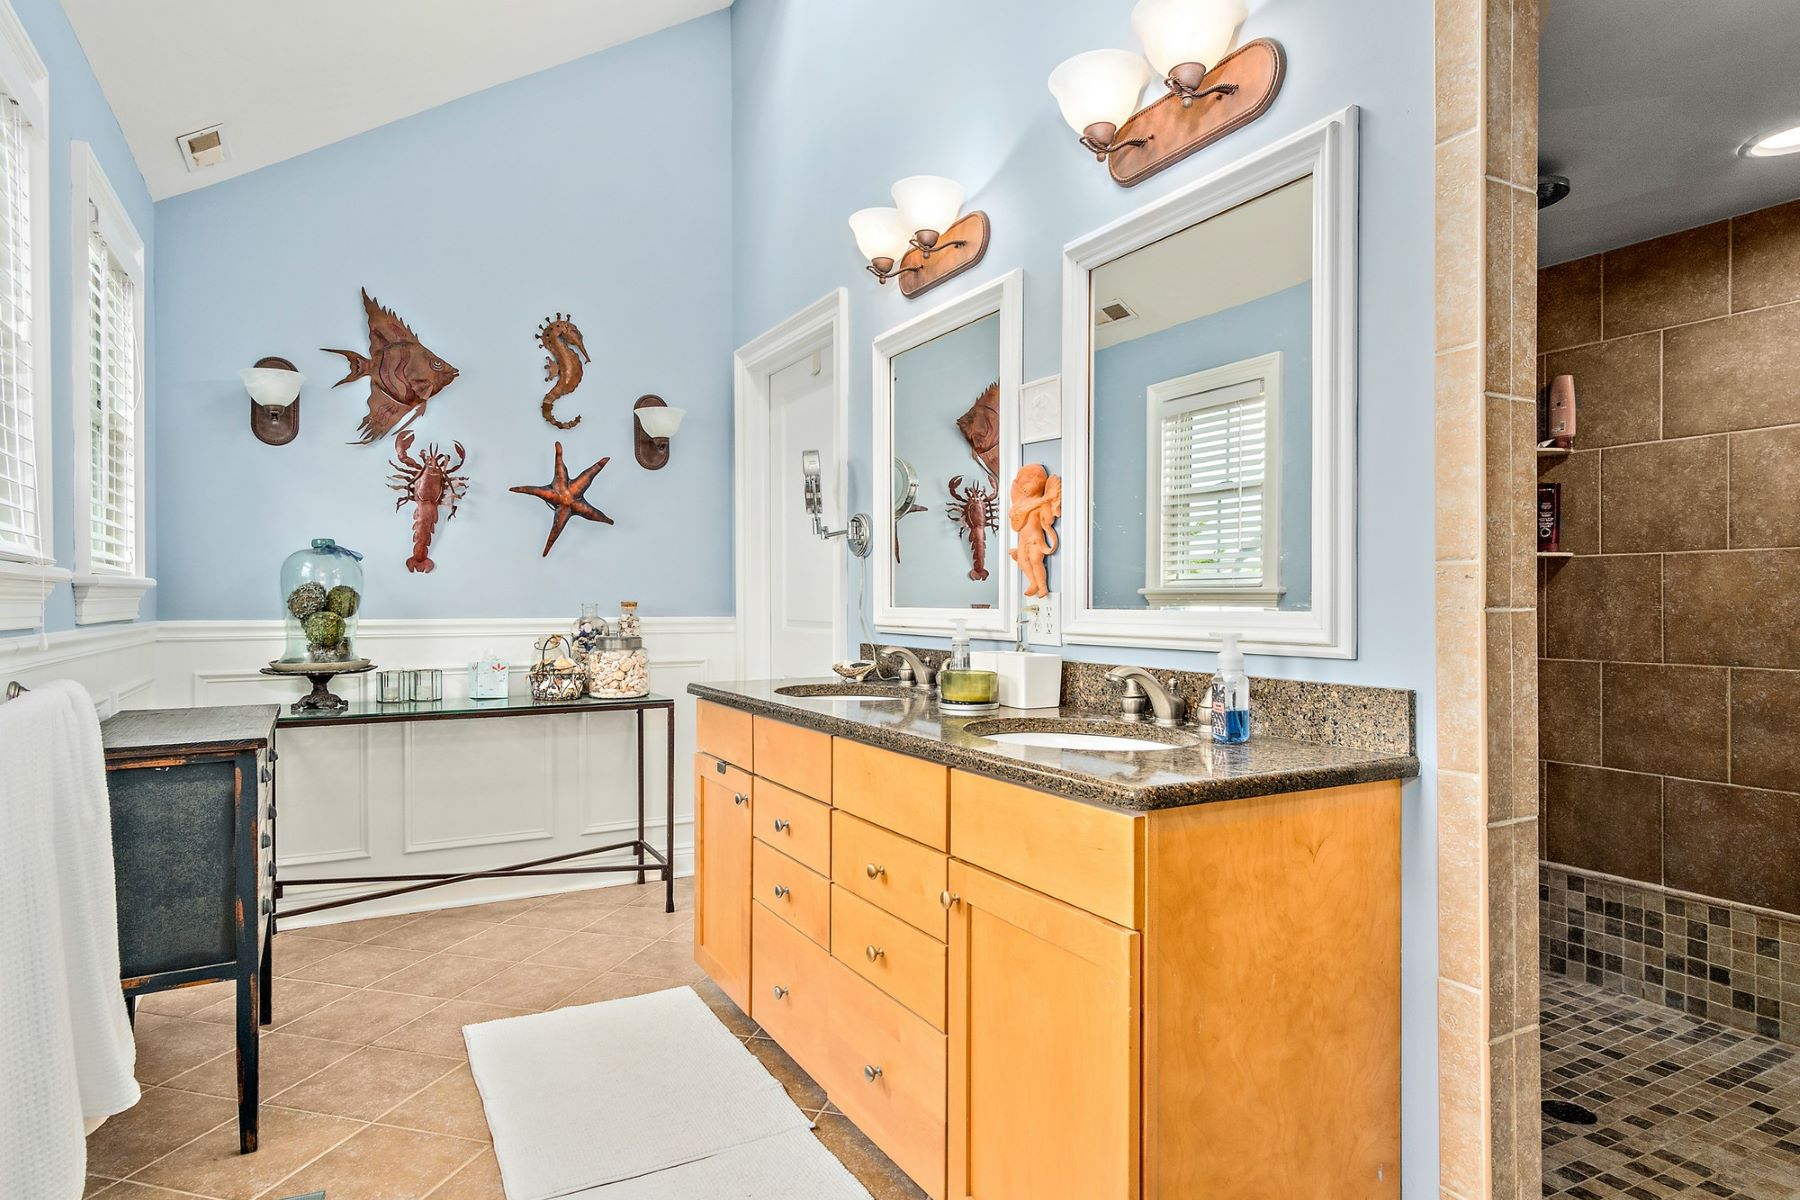 Additional photo for property listing at Elegant Home 22 Spruce Road, Ocean City, New Jersey 08226 United States